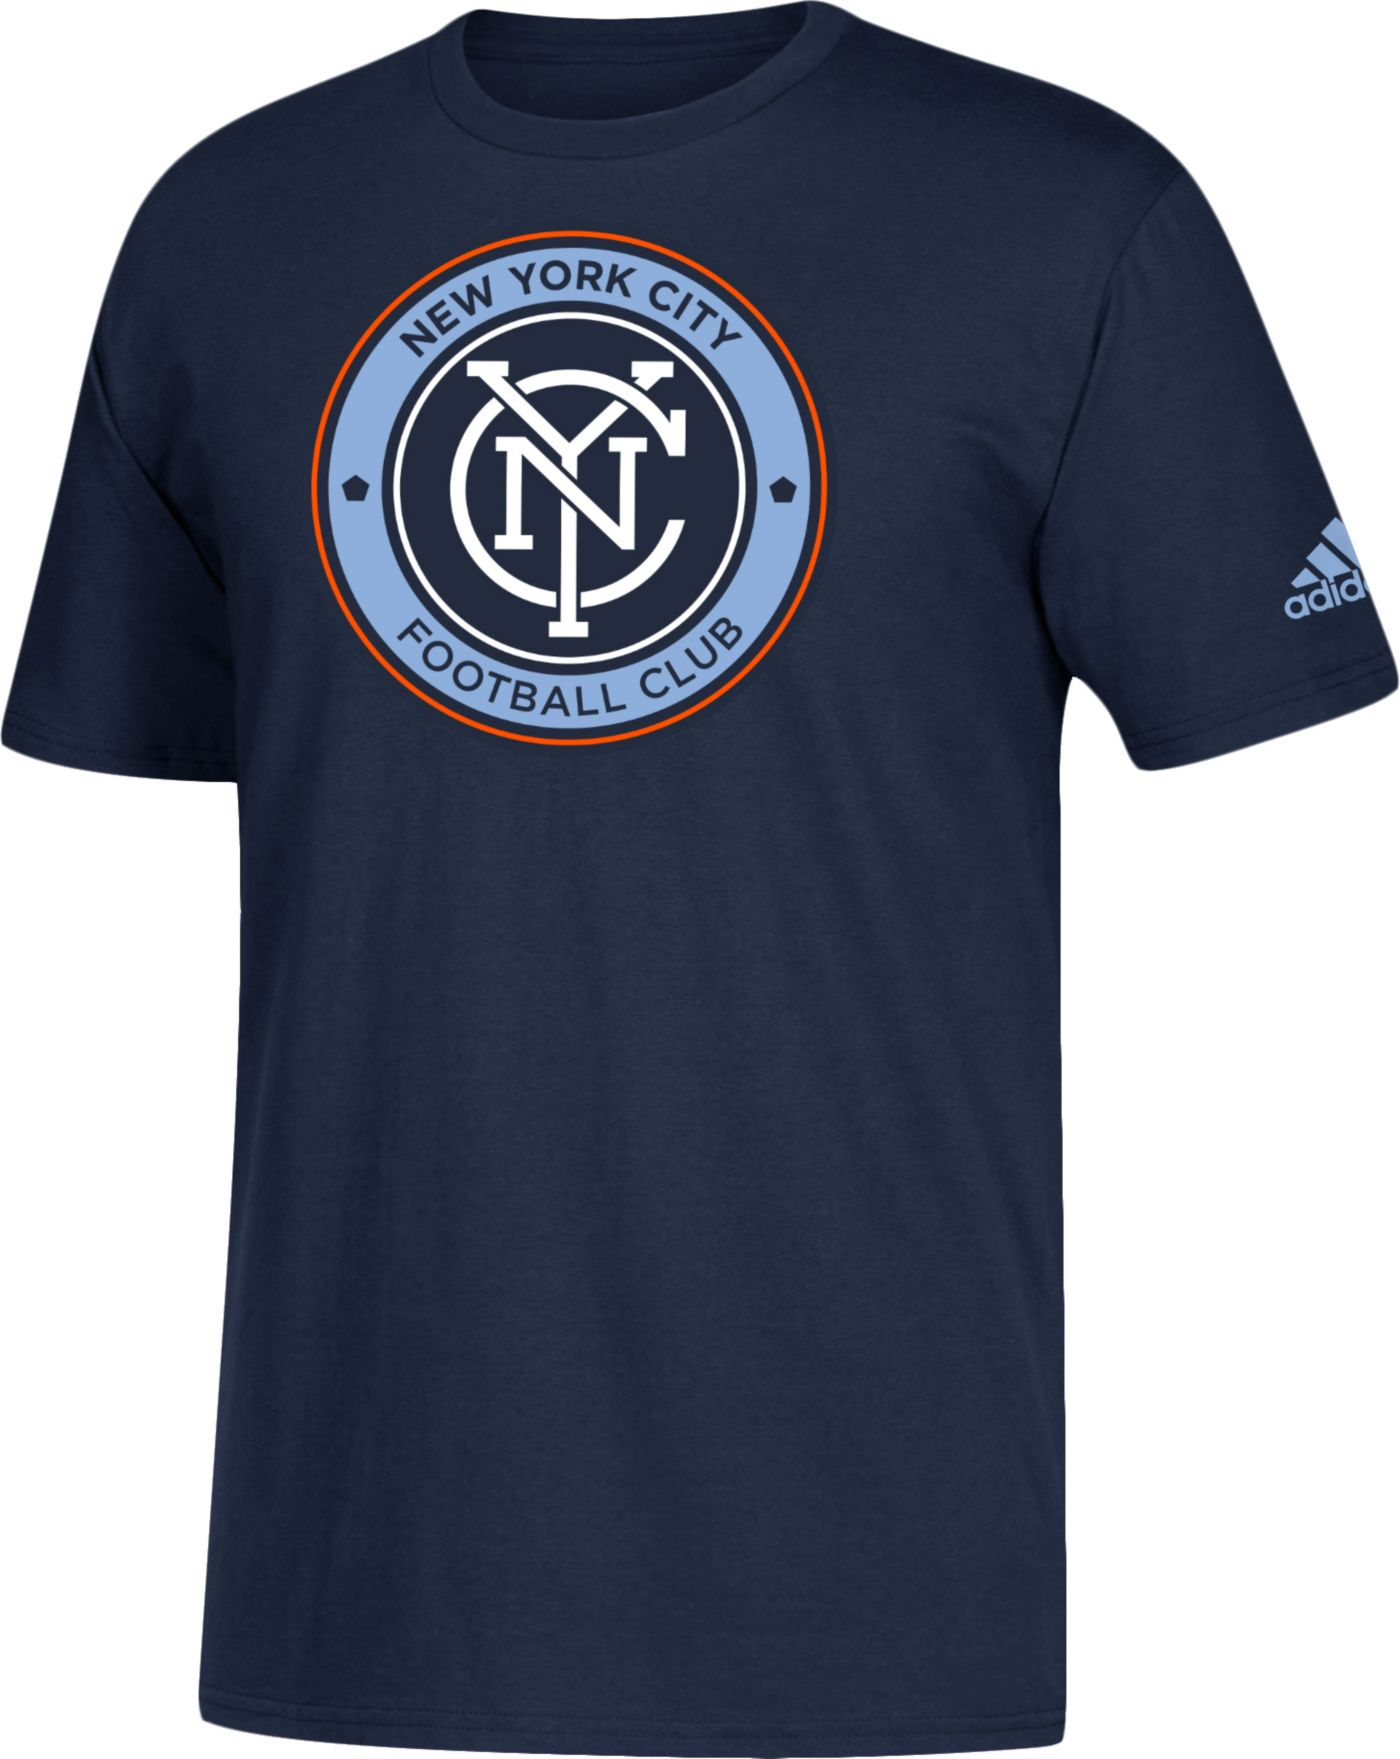 adidas Men's New York City FC Big Logo Navy T-Shirt